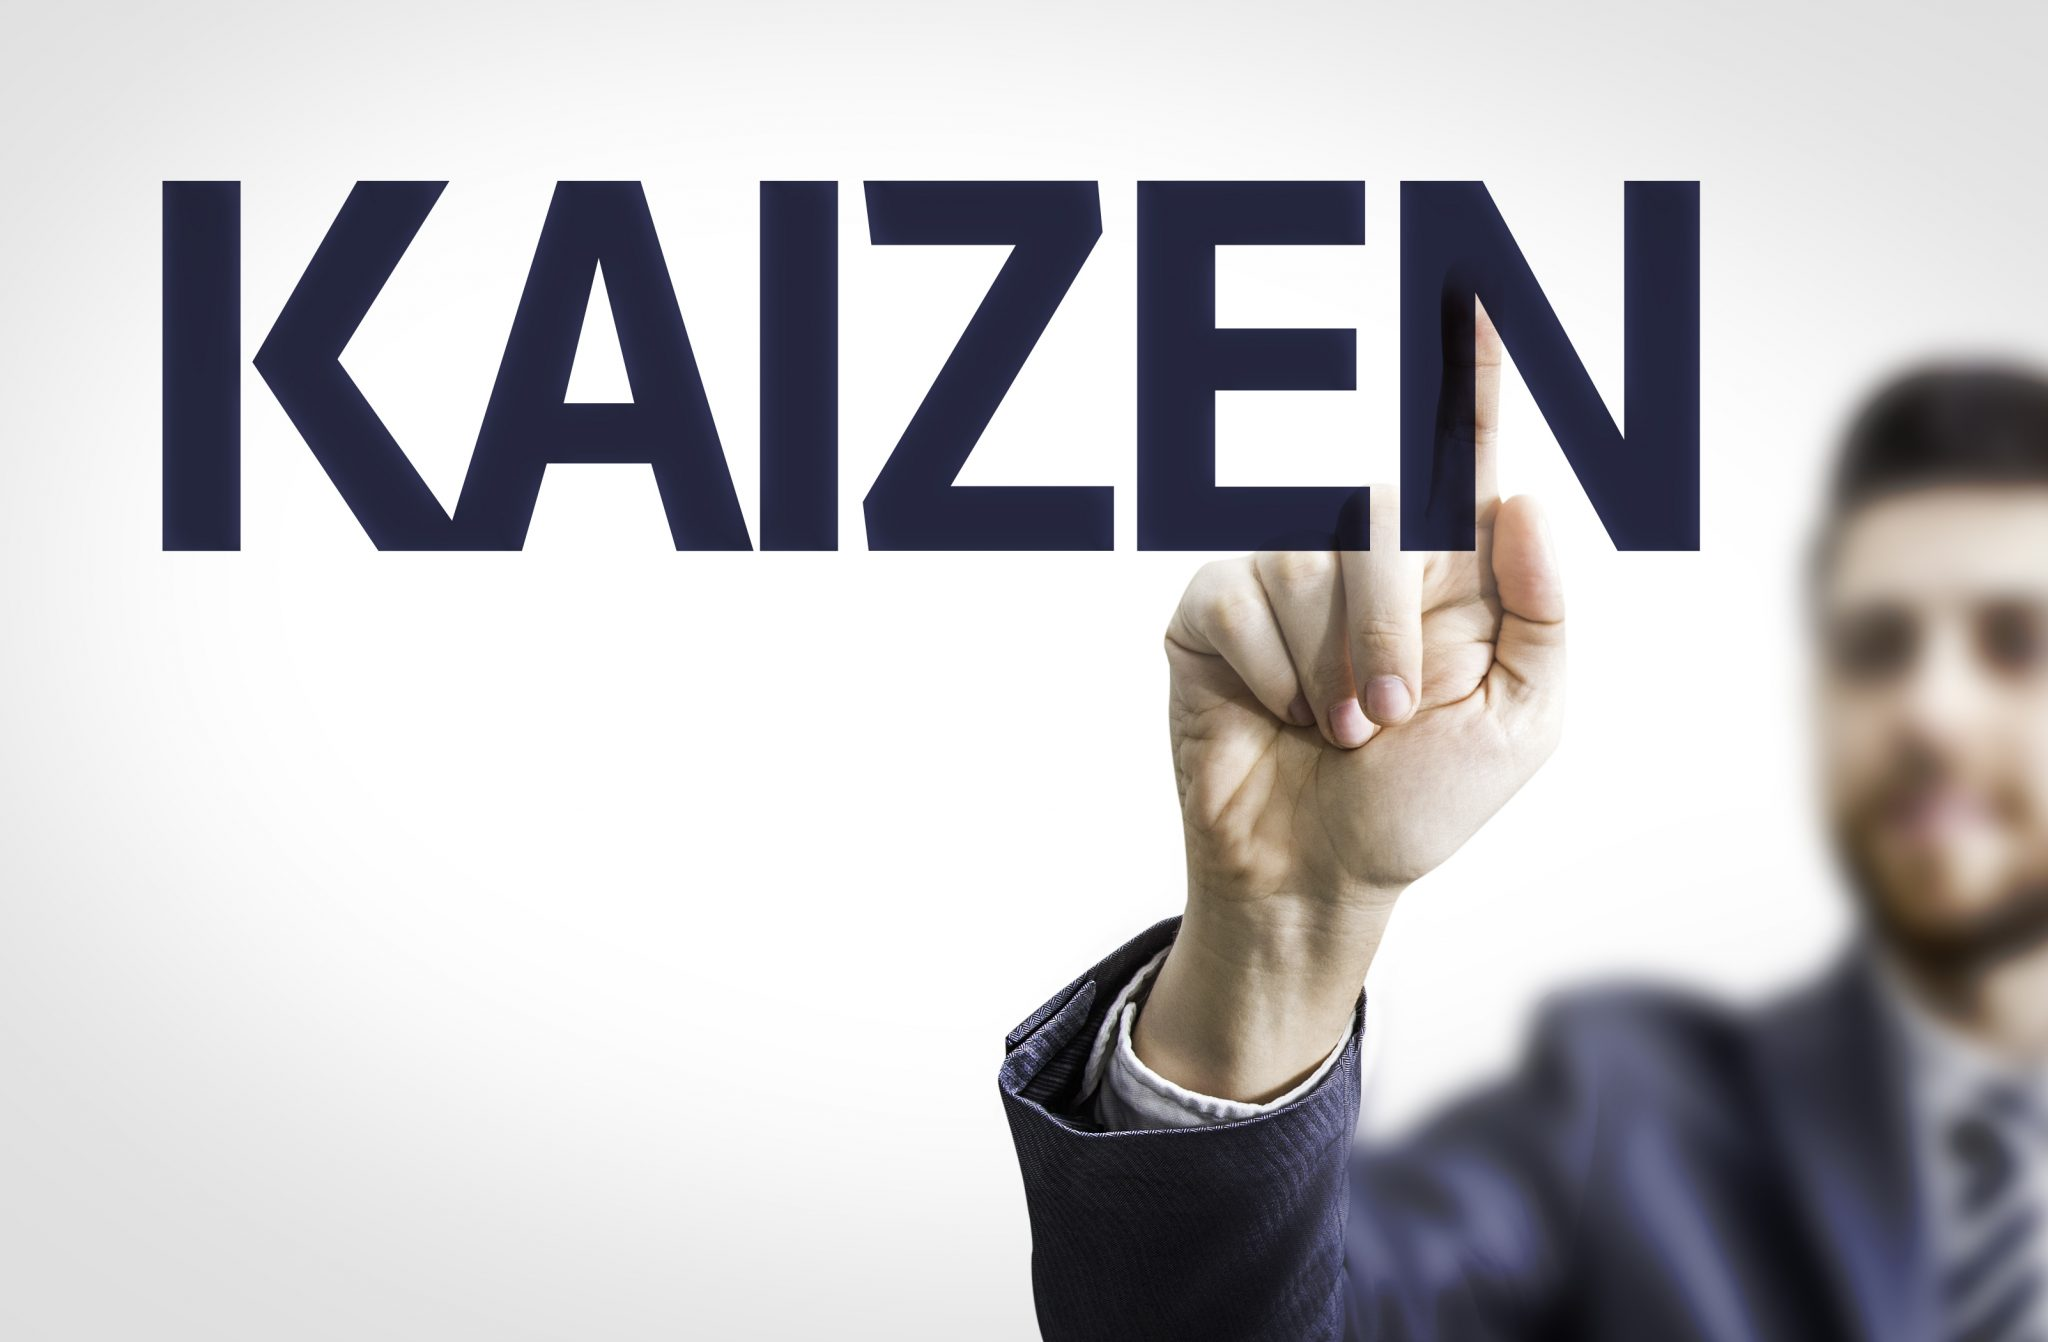 When and Where to start Kaizen at your organization?